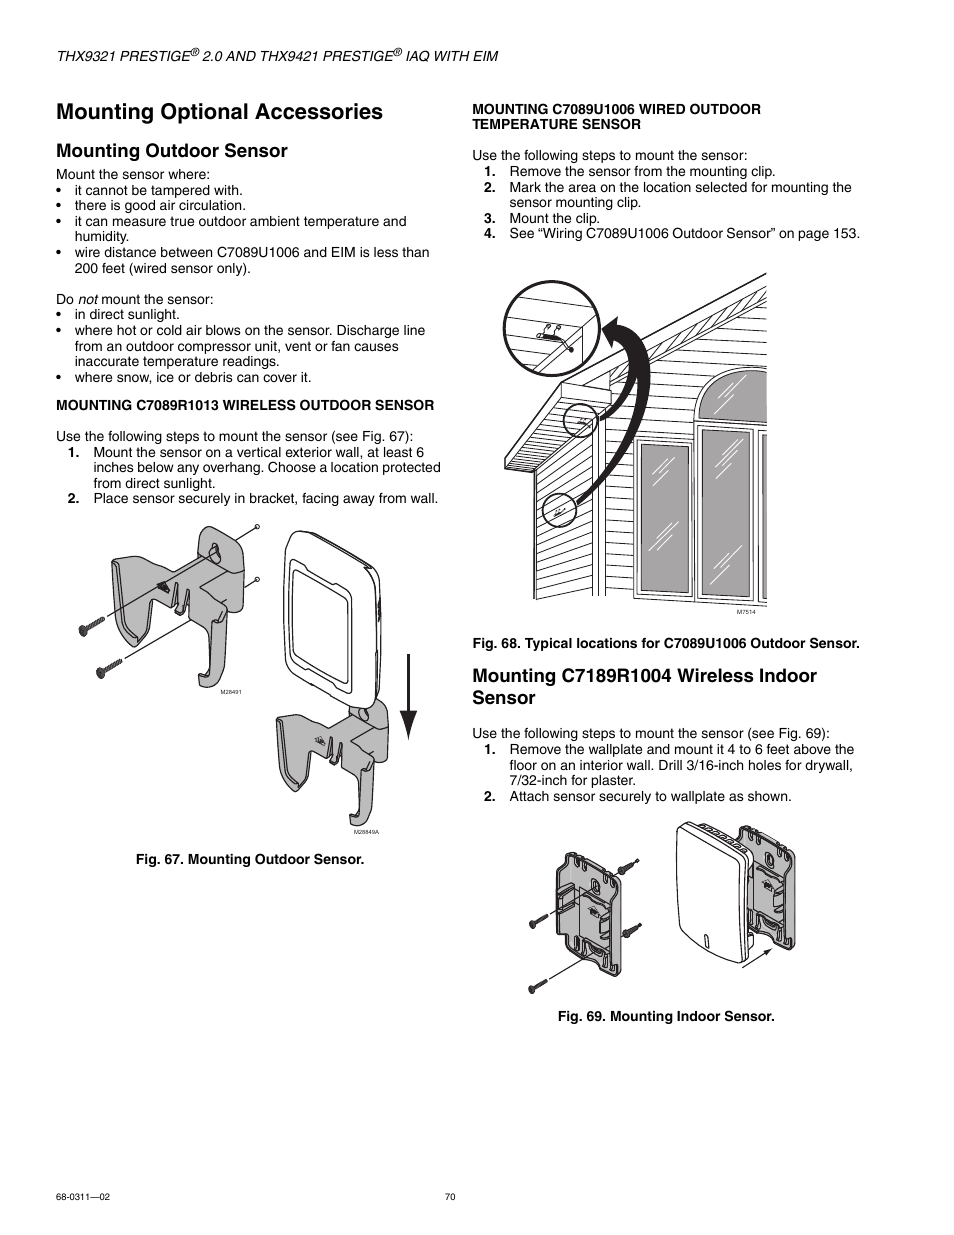 Mounting optional accessories, Mounting outdoor sensor